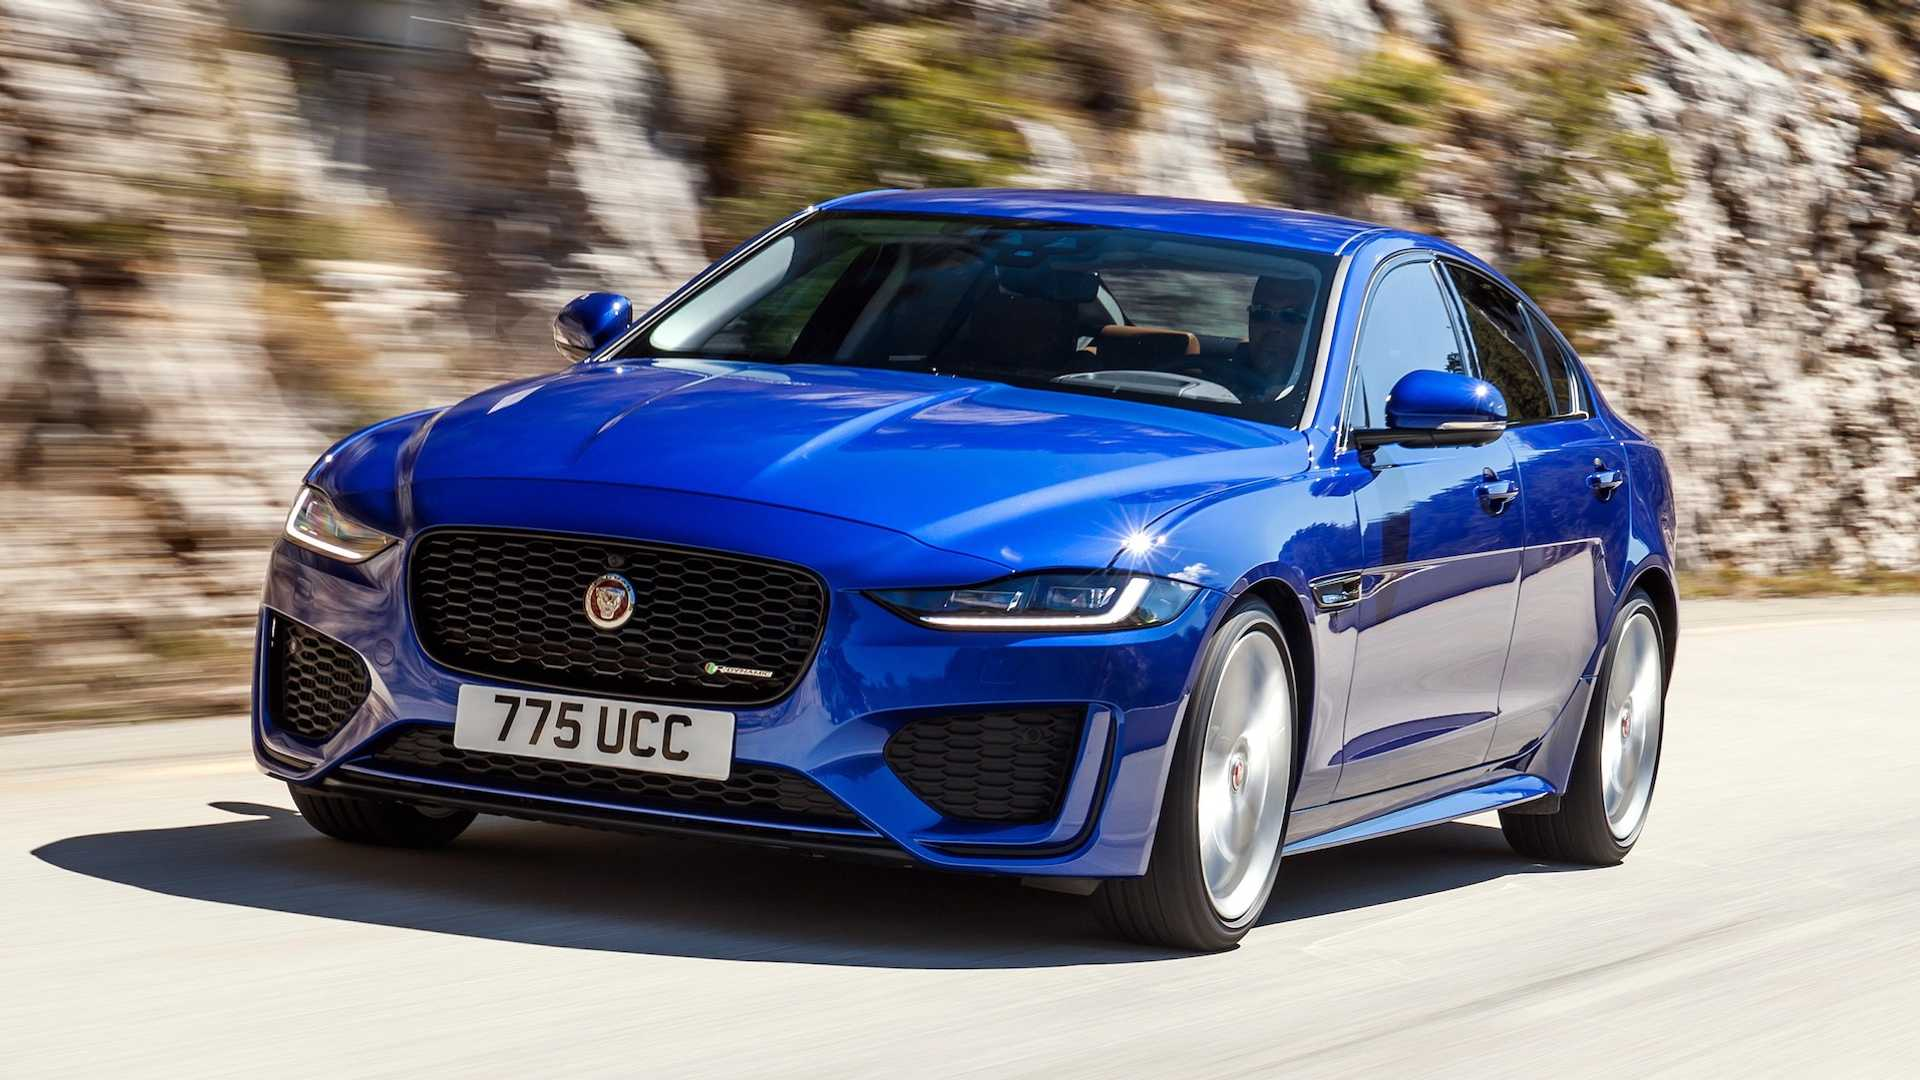 29 New Jaguar Xe 2020 Uk Release Date